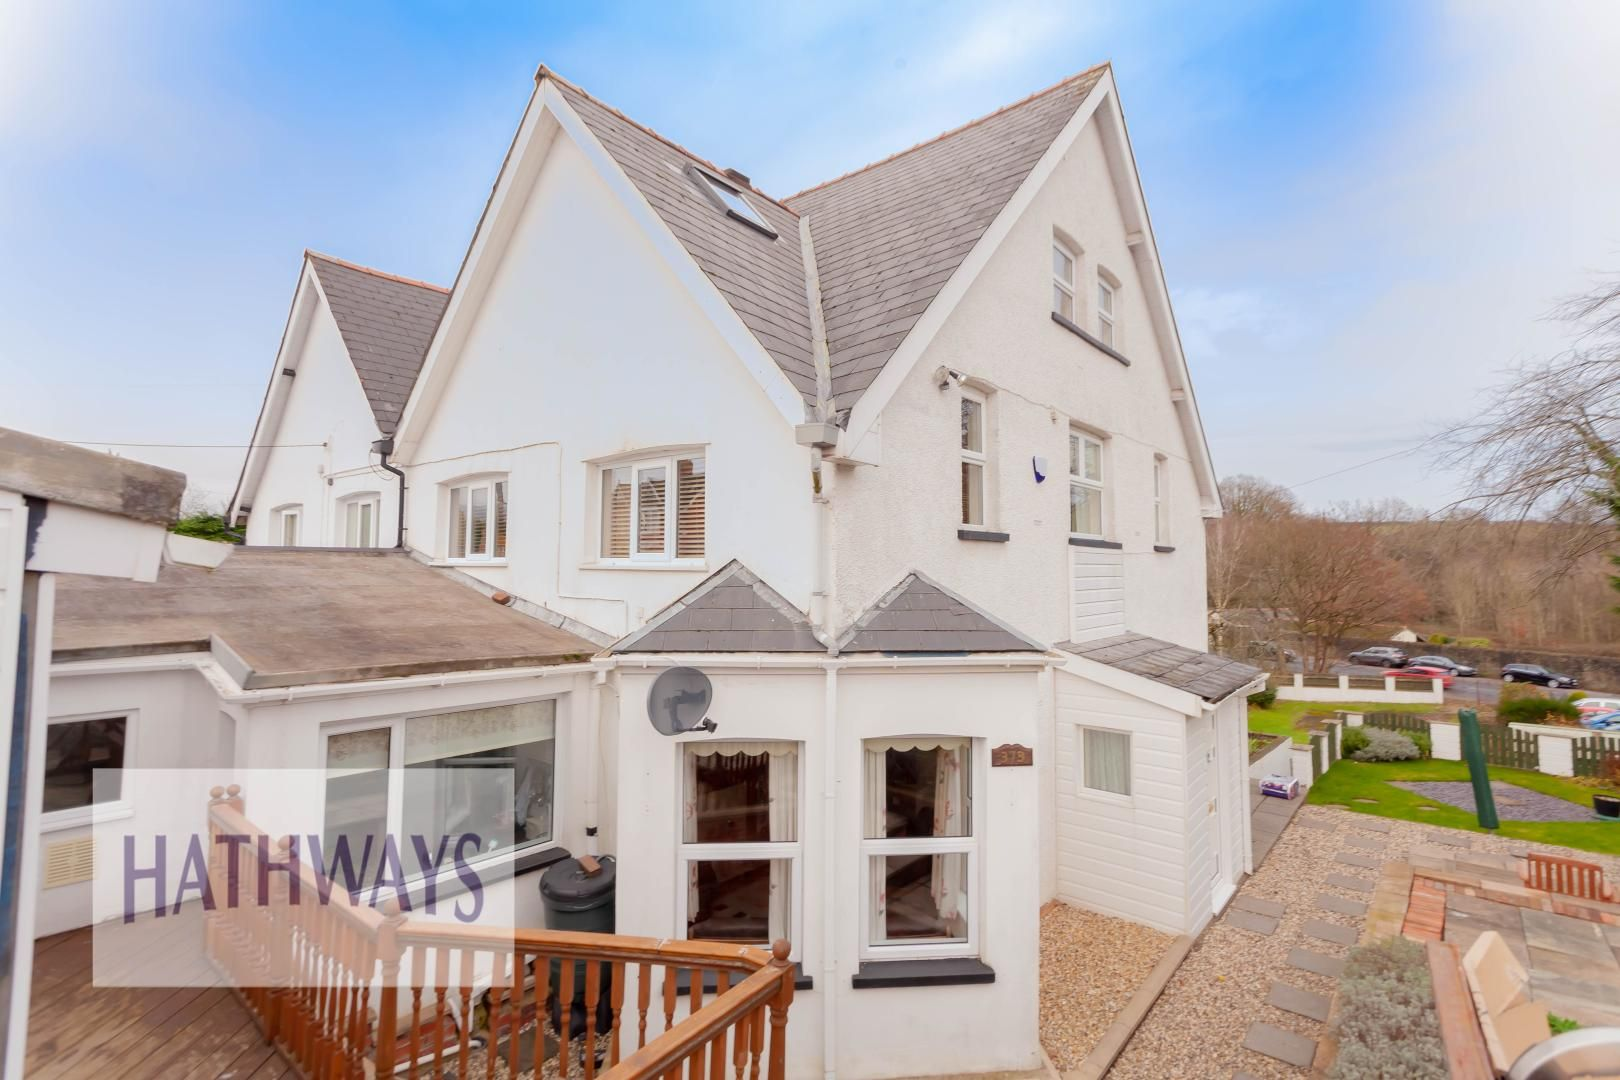 5 bed house for sale in Llantarnam Road, NP44